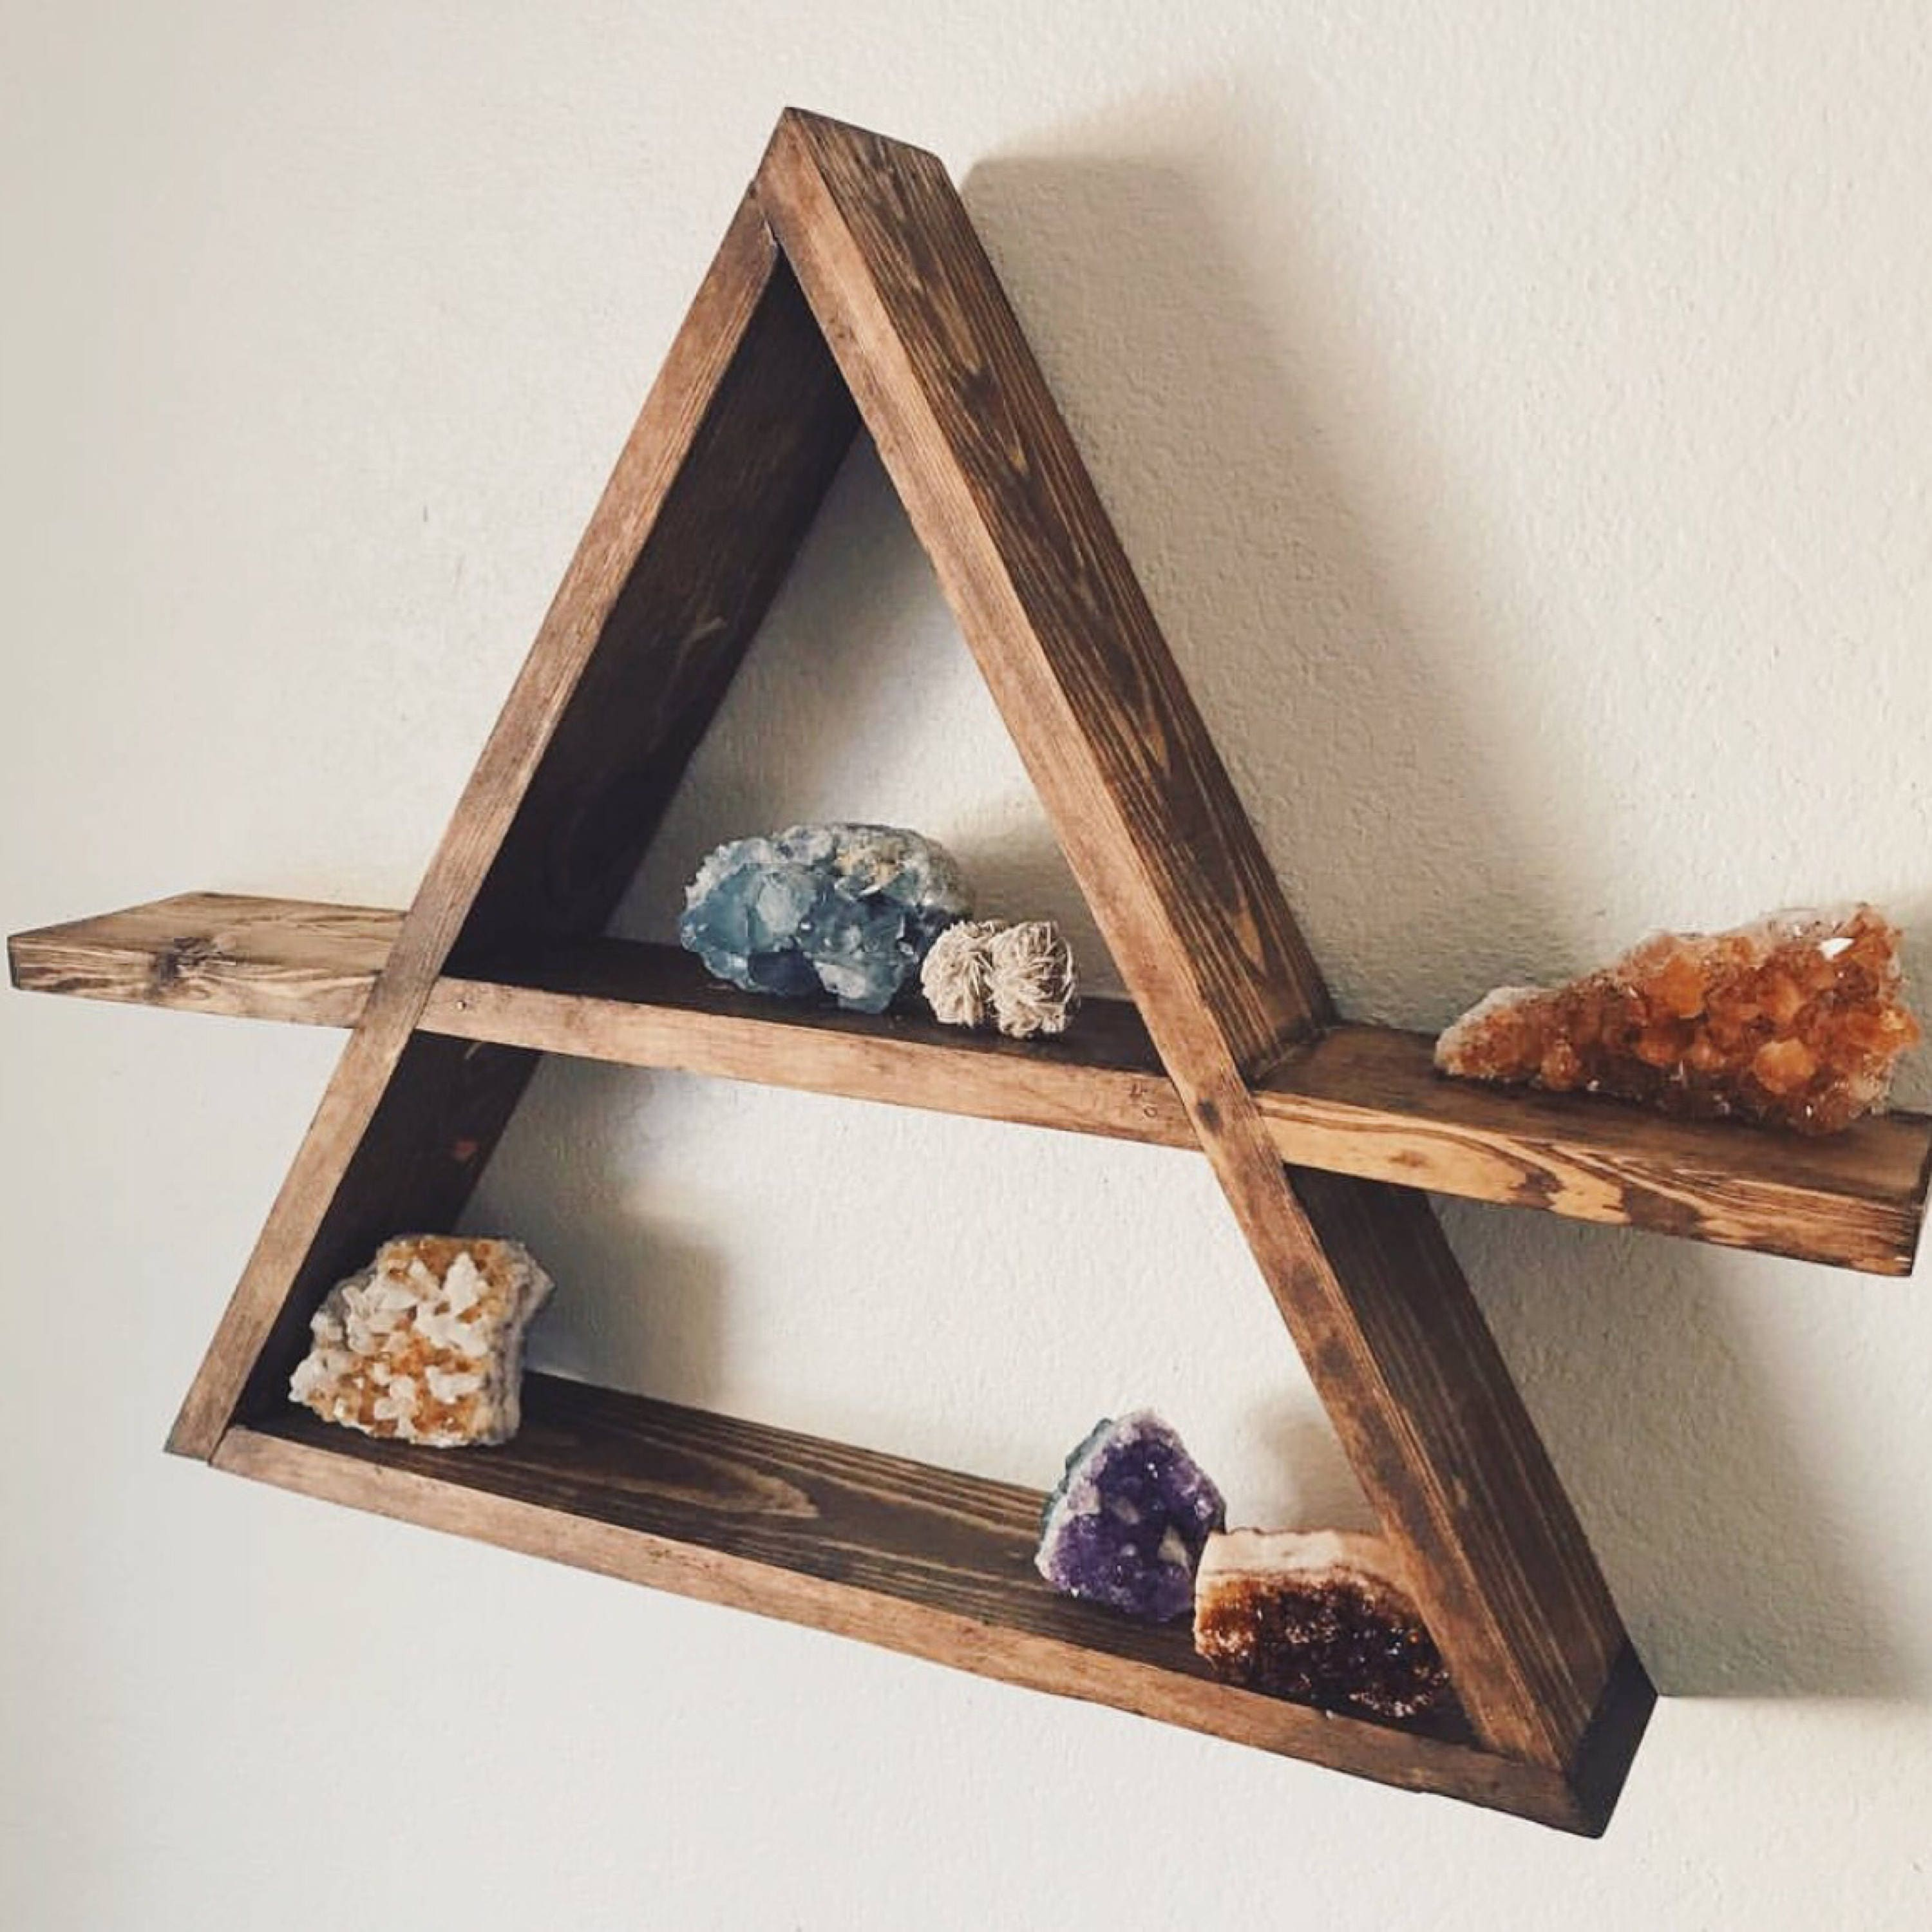 Triangle wood shelf geometric wood wall shelf rustic wall zoom amipublicfo Gallery